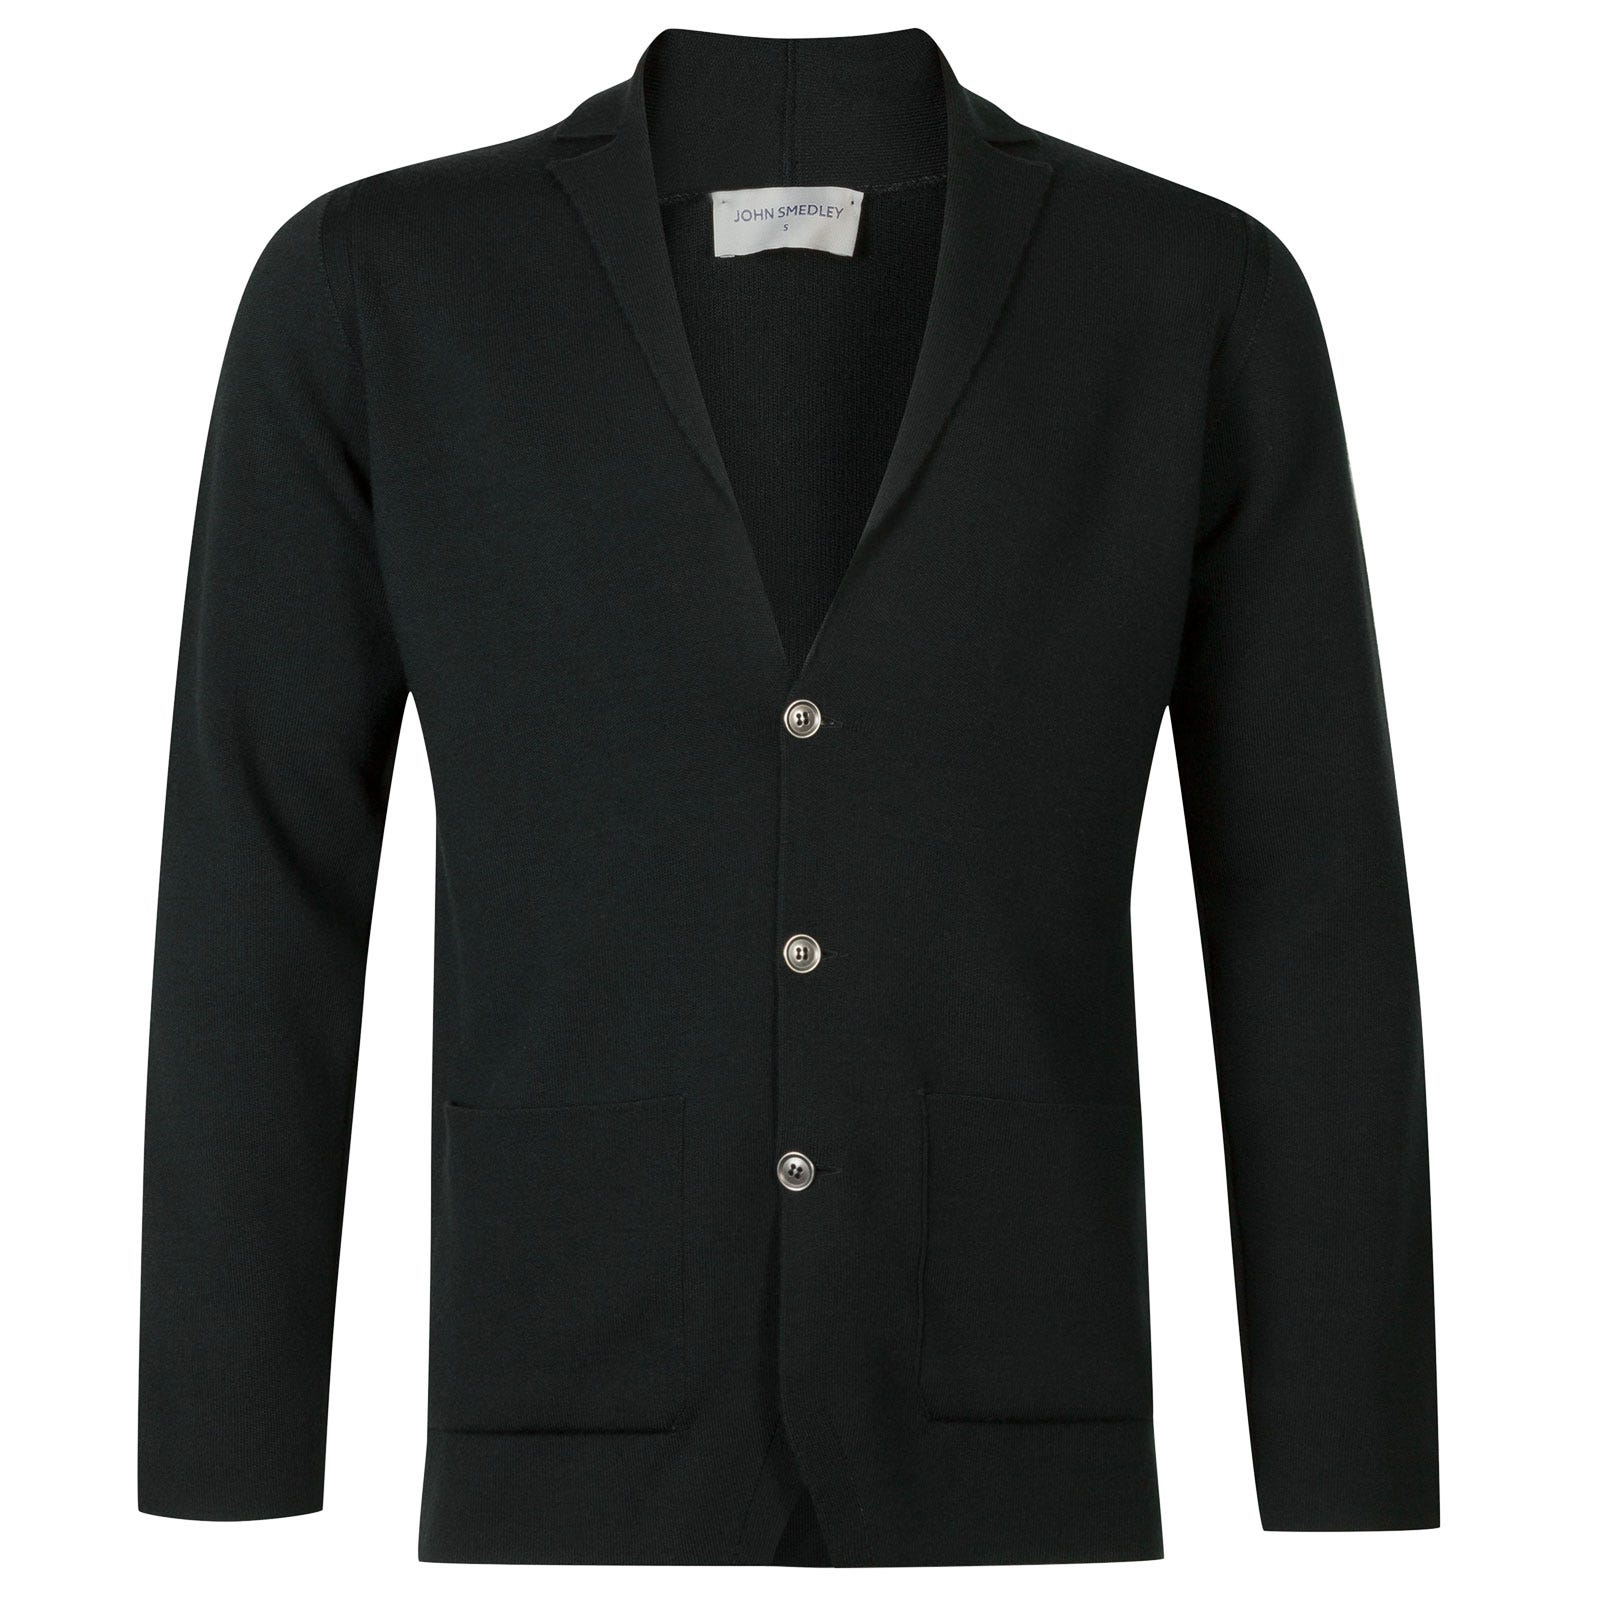 John Smedley Oxland Merino Wool Jacket in Racing Green-L